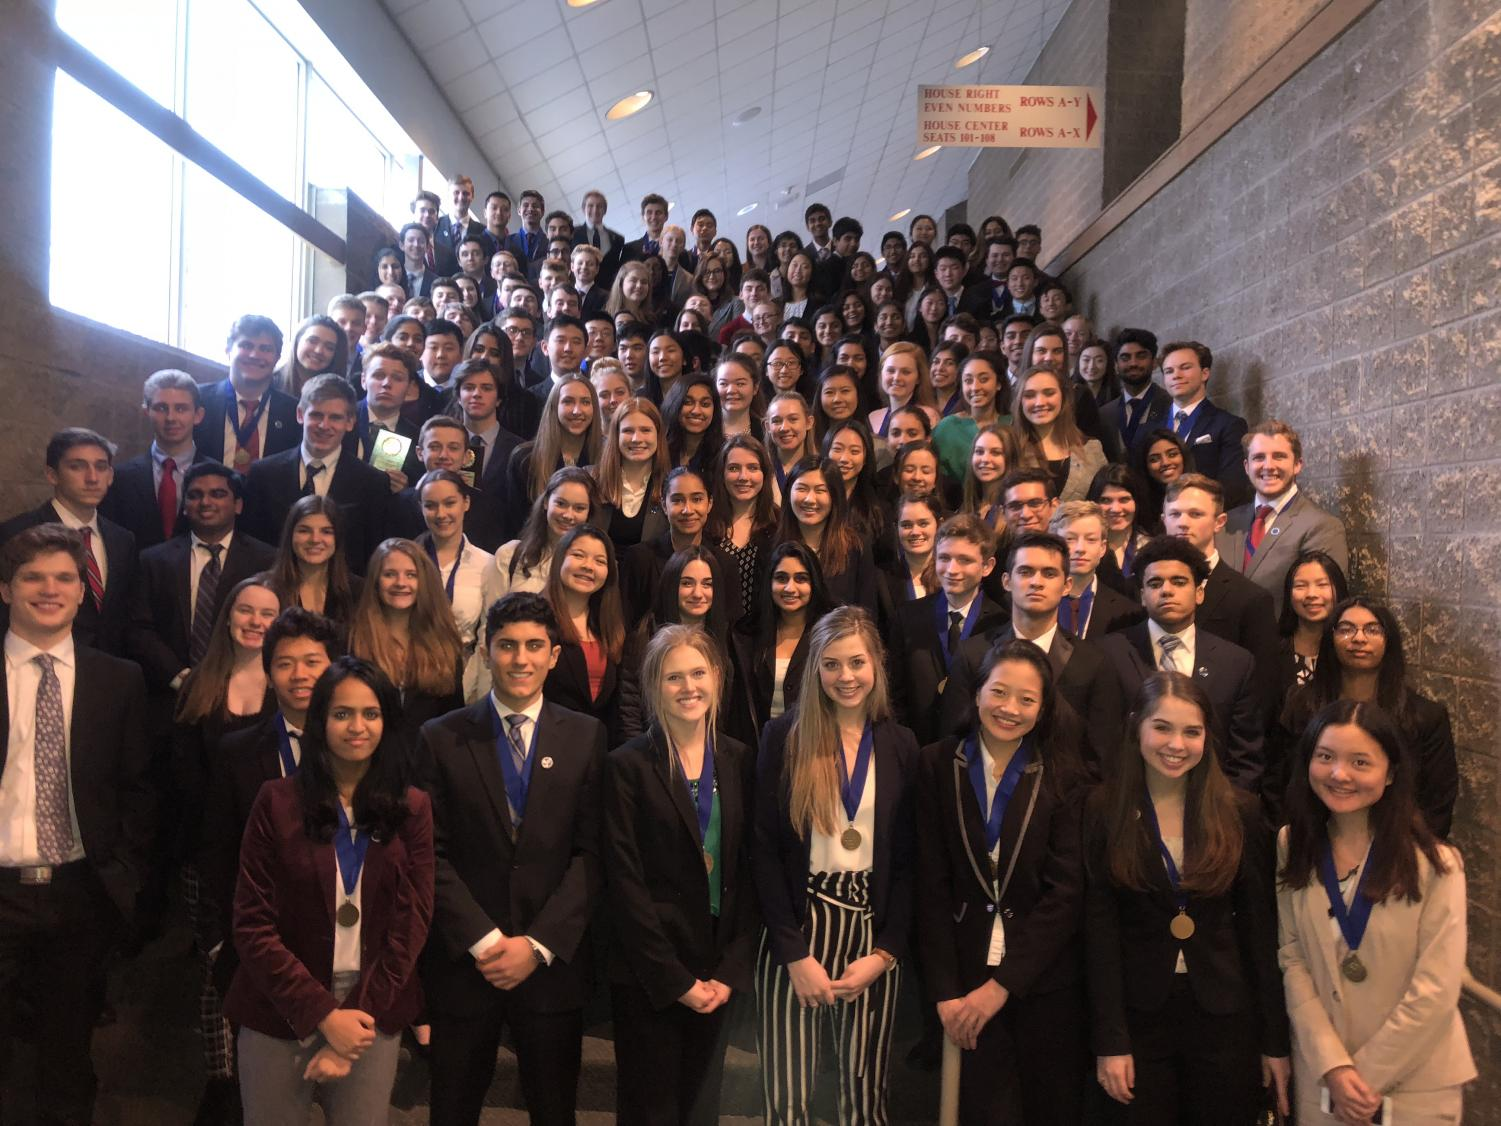 DECA students posed for a photo on Jan. 23 at Naperville Central after regionals in Rosemont, IL.